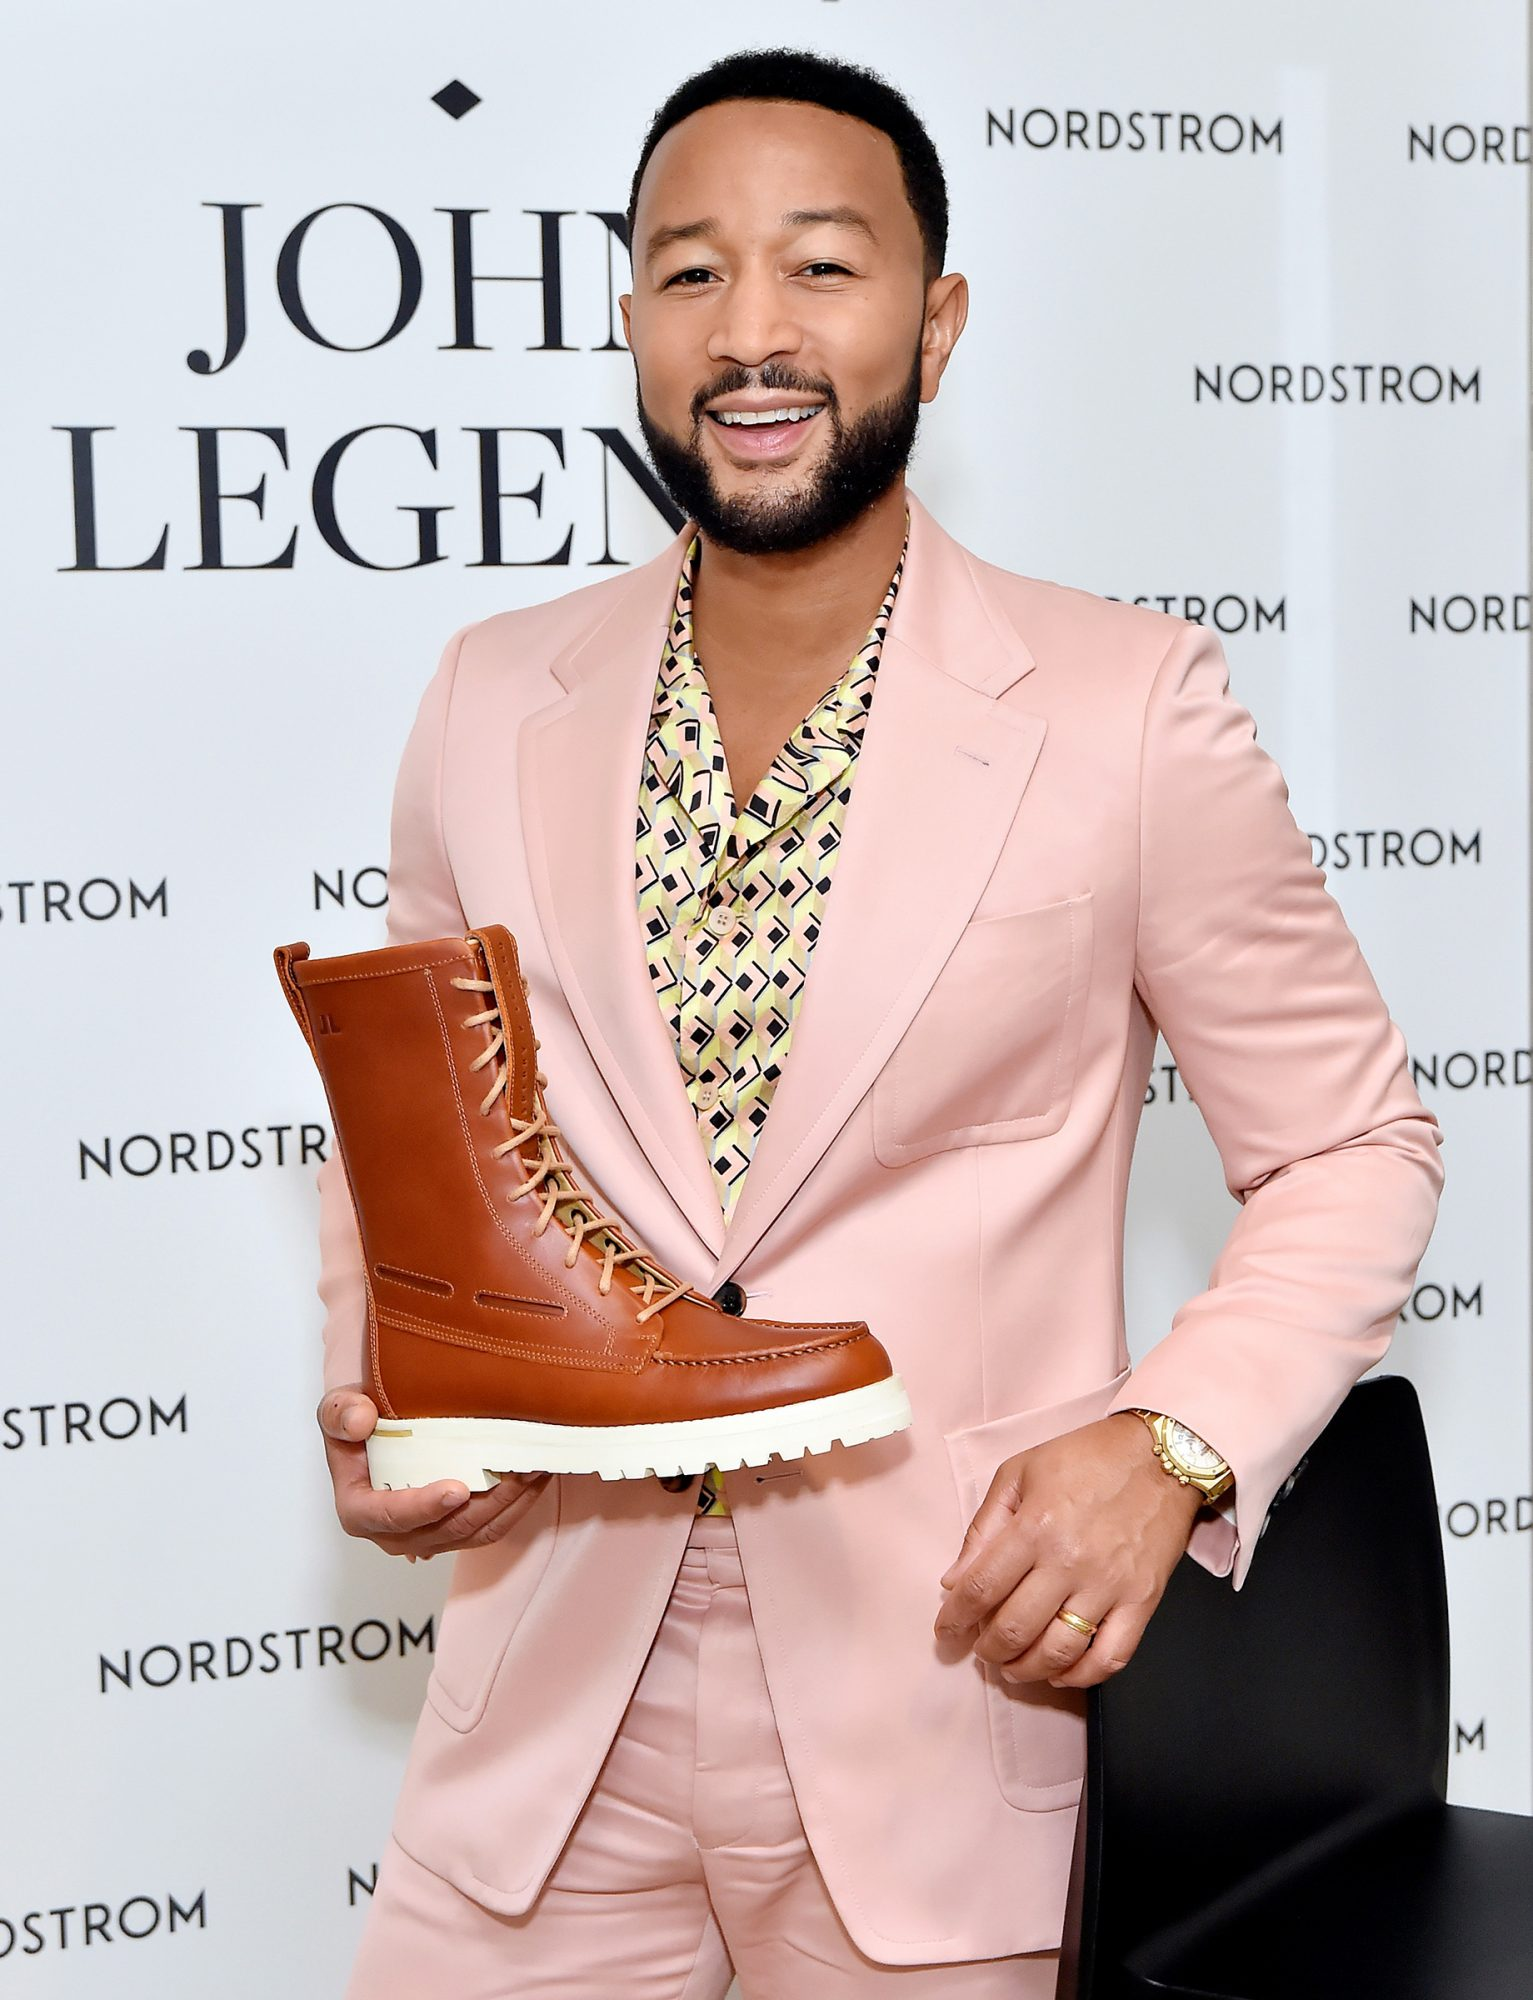 John Legend attends the Sperry x John Legend Collection Launch at Nordstrom at the Grove on September 20, 2021 in Los Angeles, California.